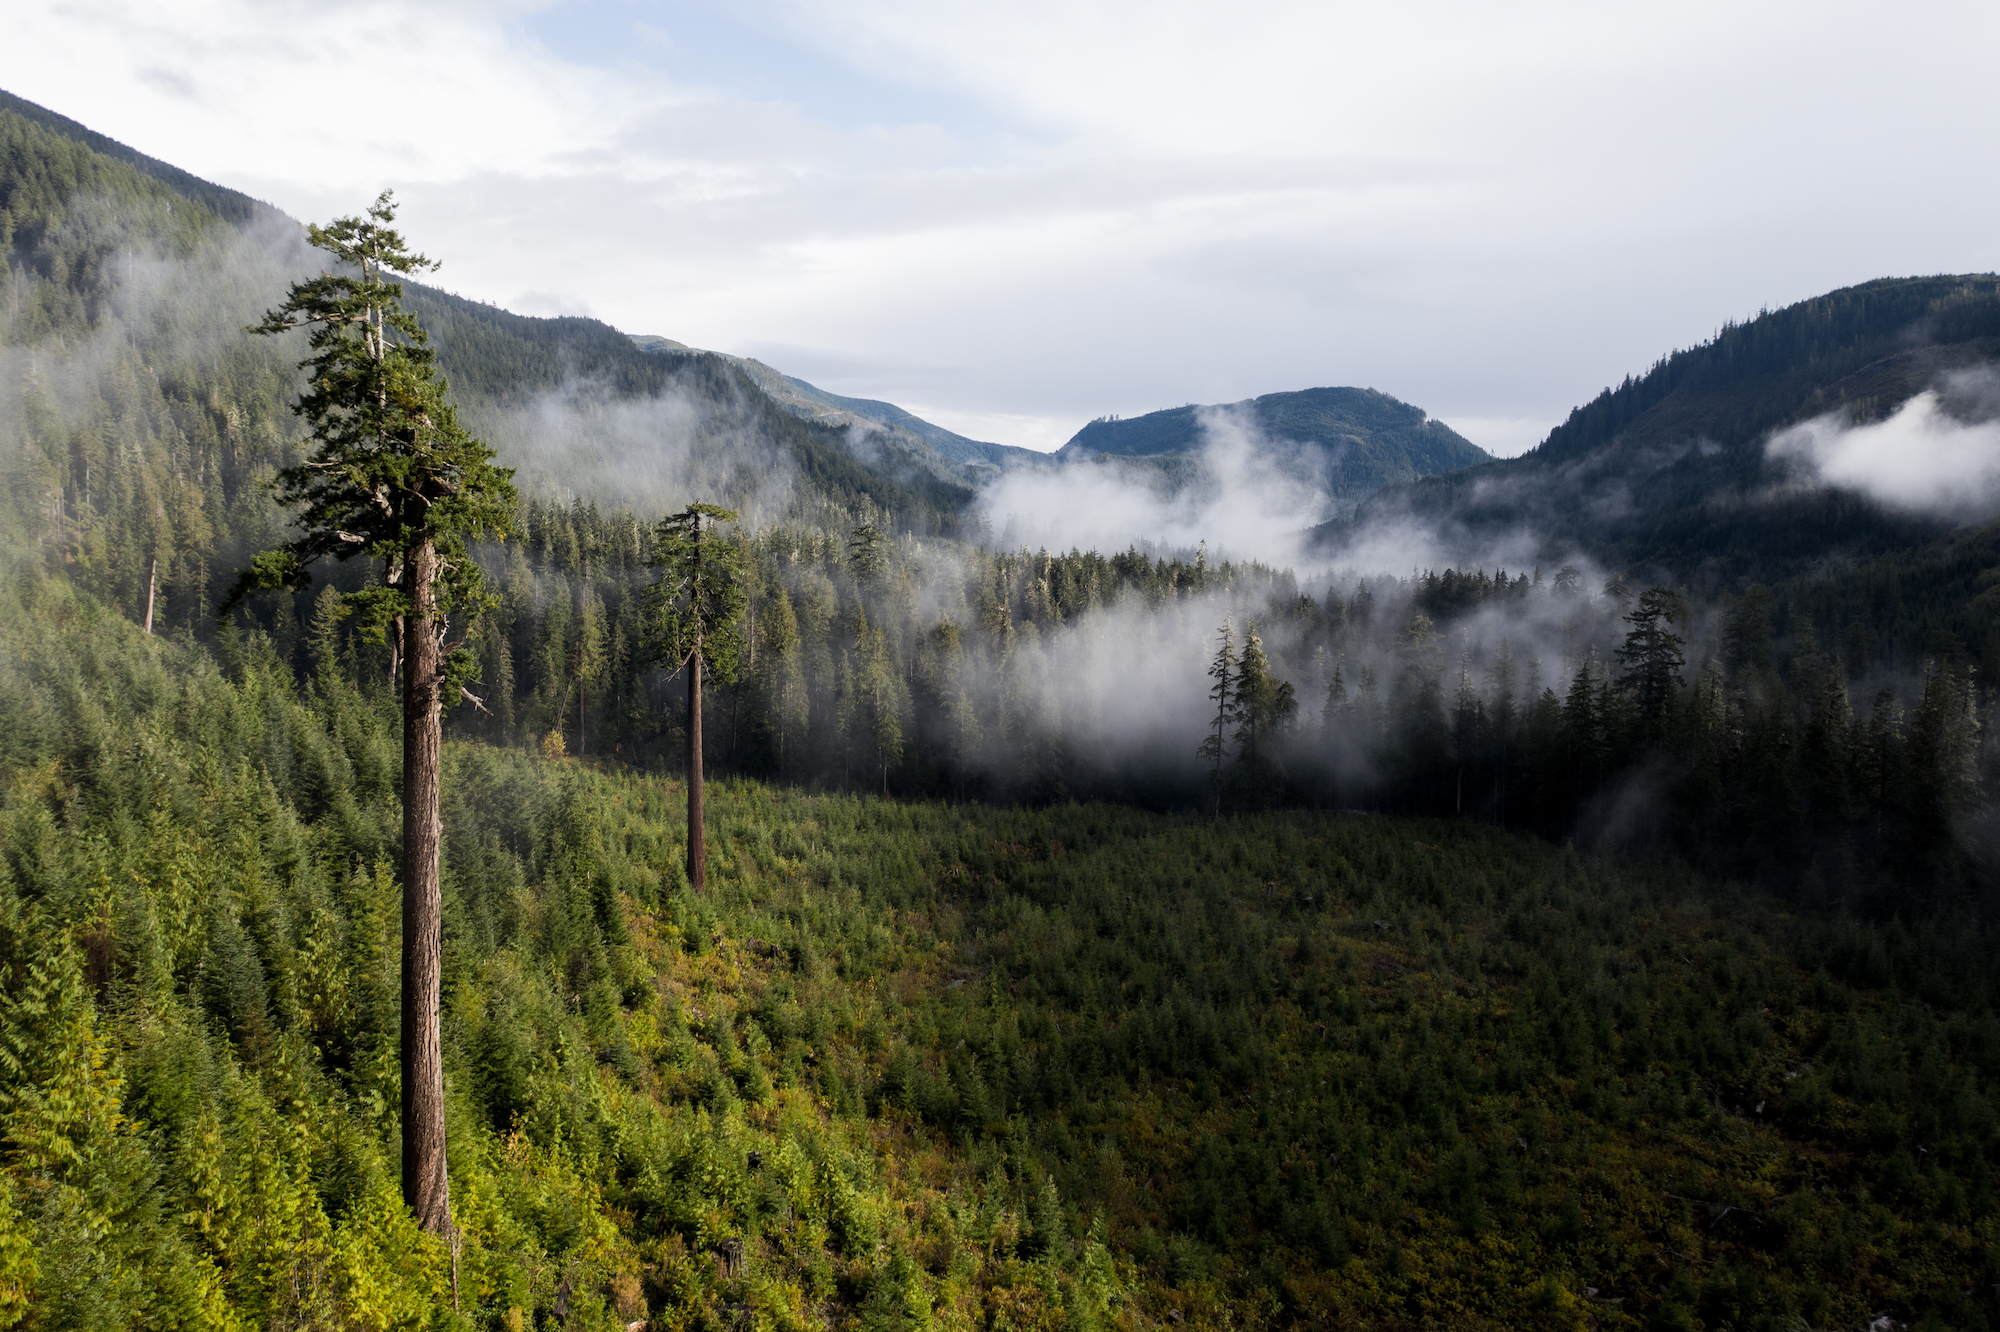 Logging change: old-growth harvesting has deep roots on Vancouver Island, but how long can it last?